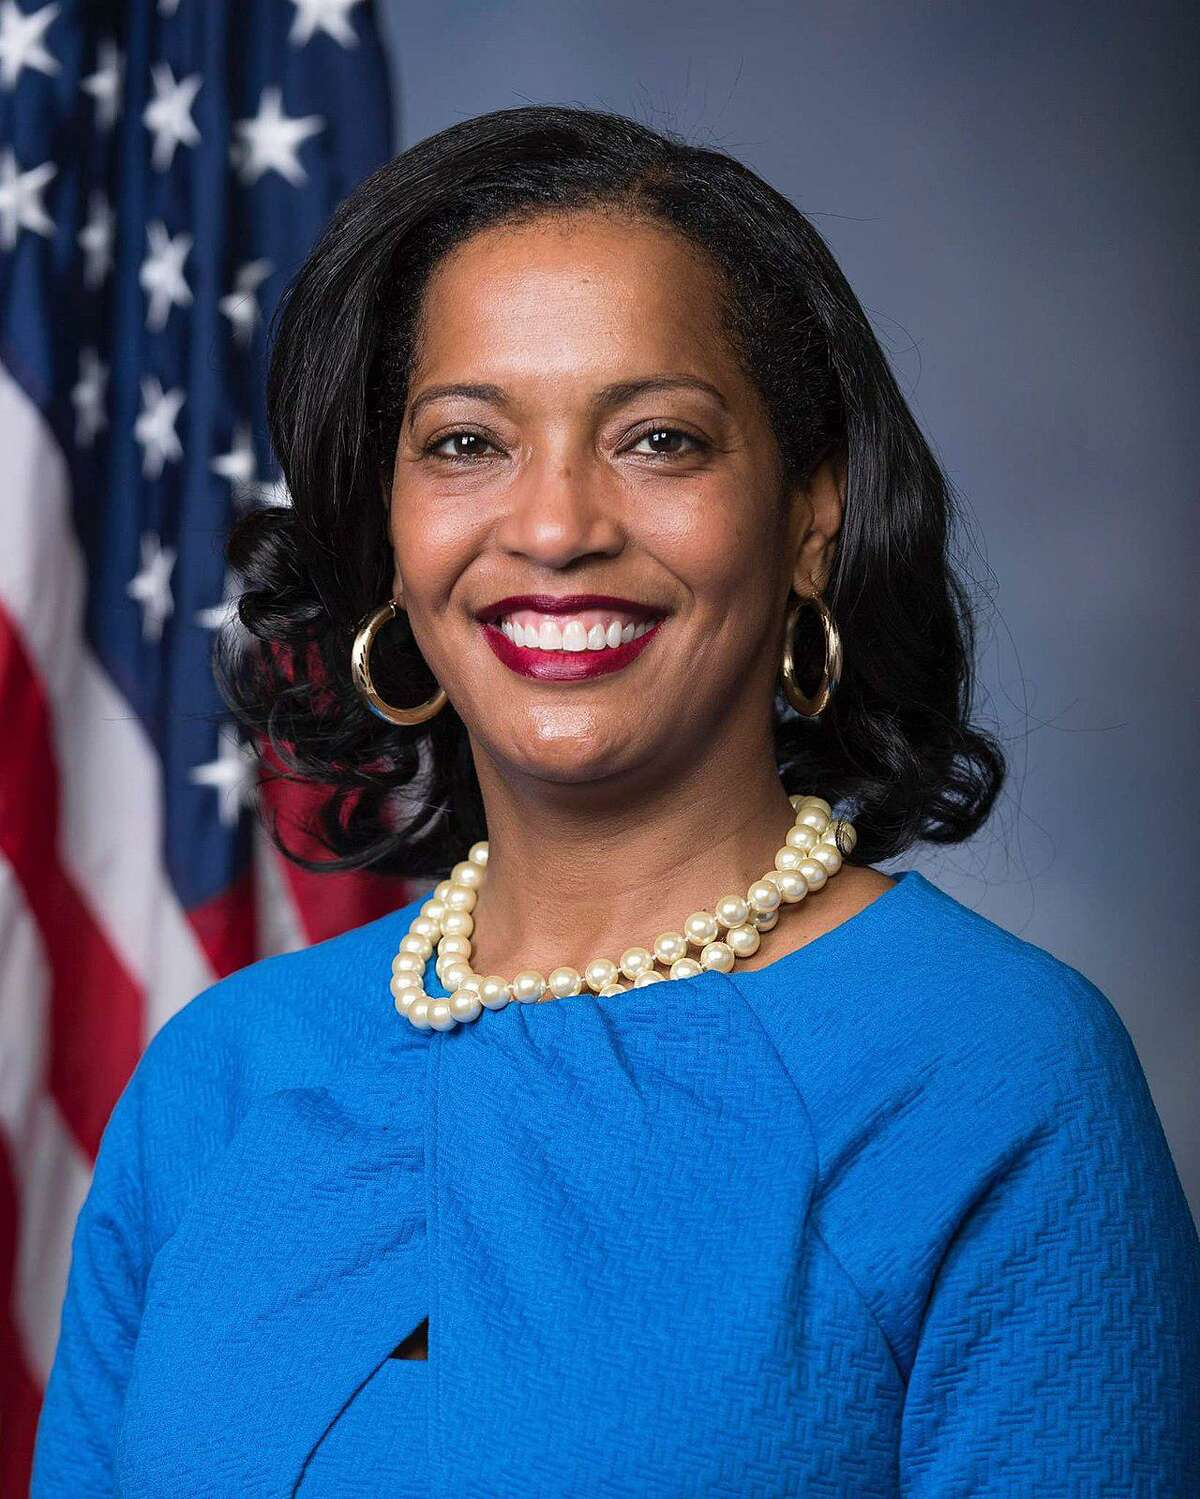 """U.S. Rep. Jahana Hayes. U.S. Rep. Jahana Hayes, who impressed 2018 voters with her story of overcoming high school motherhood to win the national Teacher of the Year award, says the way to a brighter future for greater Danbury and the 5th District is to bring all its voices to congress. Hayes, a rising star in the Democratic Party, says her vision to gather the diverse voices from the cities and towns in northwest and central Connecticut stems from her conviction that """"government should be about making everyone's lives better."""" """"I'm somebody who is going to consider all perspectives, listen to what people have to say, and consider that as part of the conversation,"""" Hayes said during an early October debate. """"When we are in caucus, the conversations that (constituents) are having in their living room, the questions they're asking, the concerns that they have, will be brought into the room by me."""" Hayes, a freshman congresswoman who made the cover of Rolling Stone as one of the women of color who helped Democrats take control of the House in the midterm elections, is favored by leading forecasters to defeat GOP challenger David X. Sullivan. Read More"""